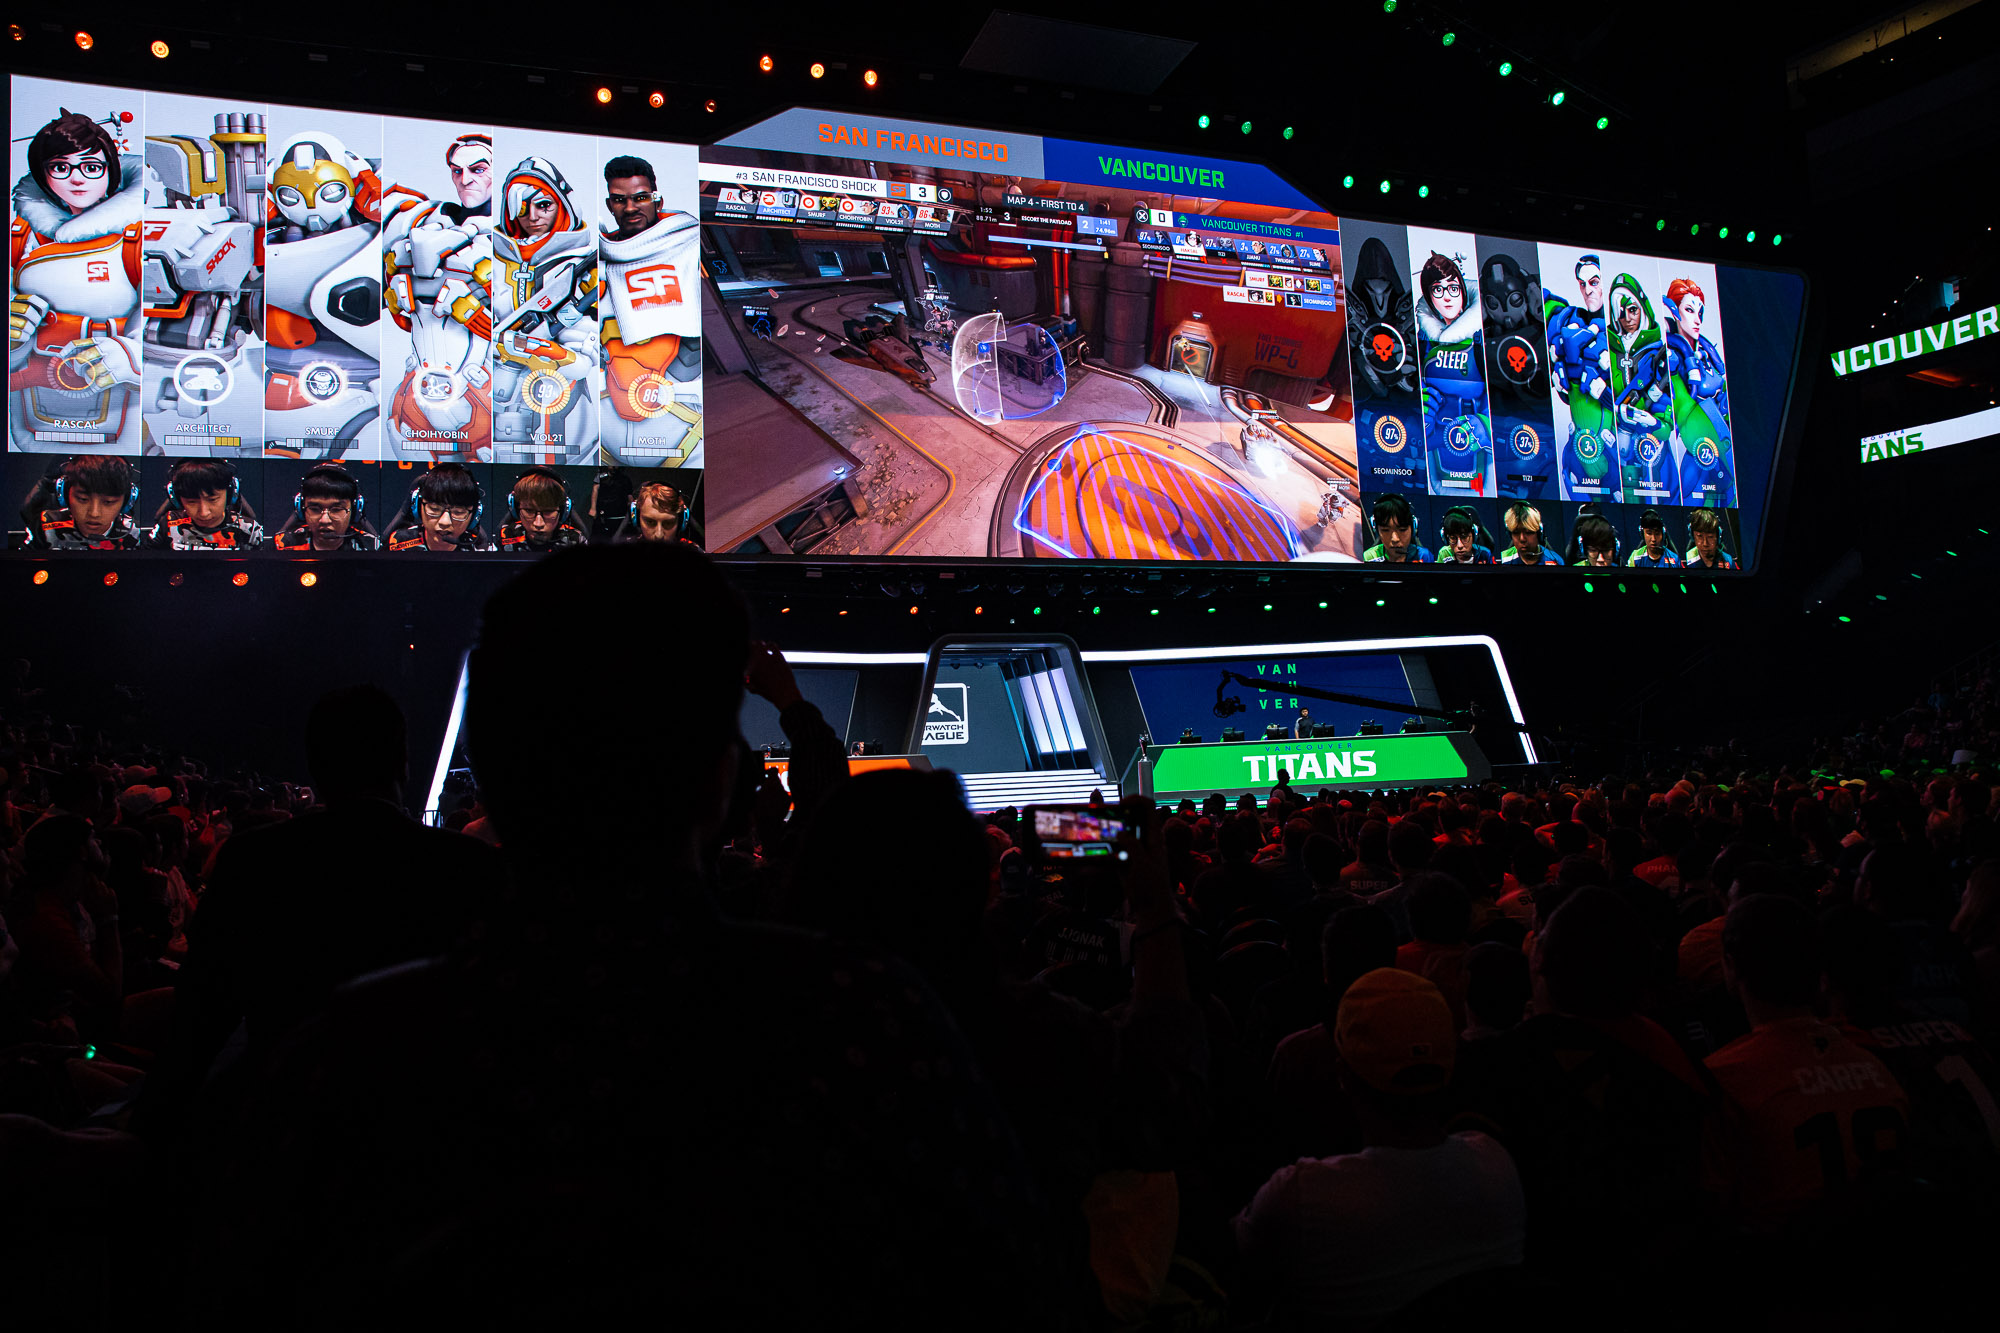 Coronavirus Concerns Lead To Competitive Gaming Events Cancelations